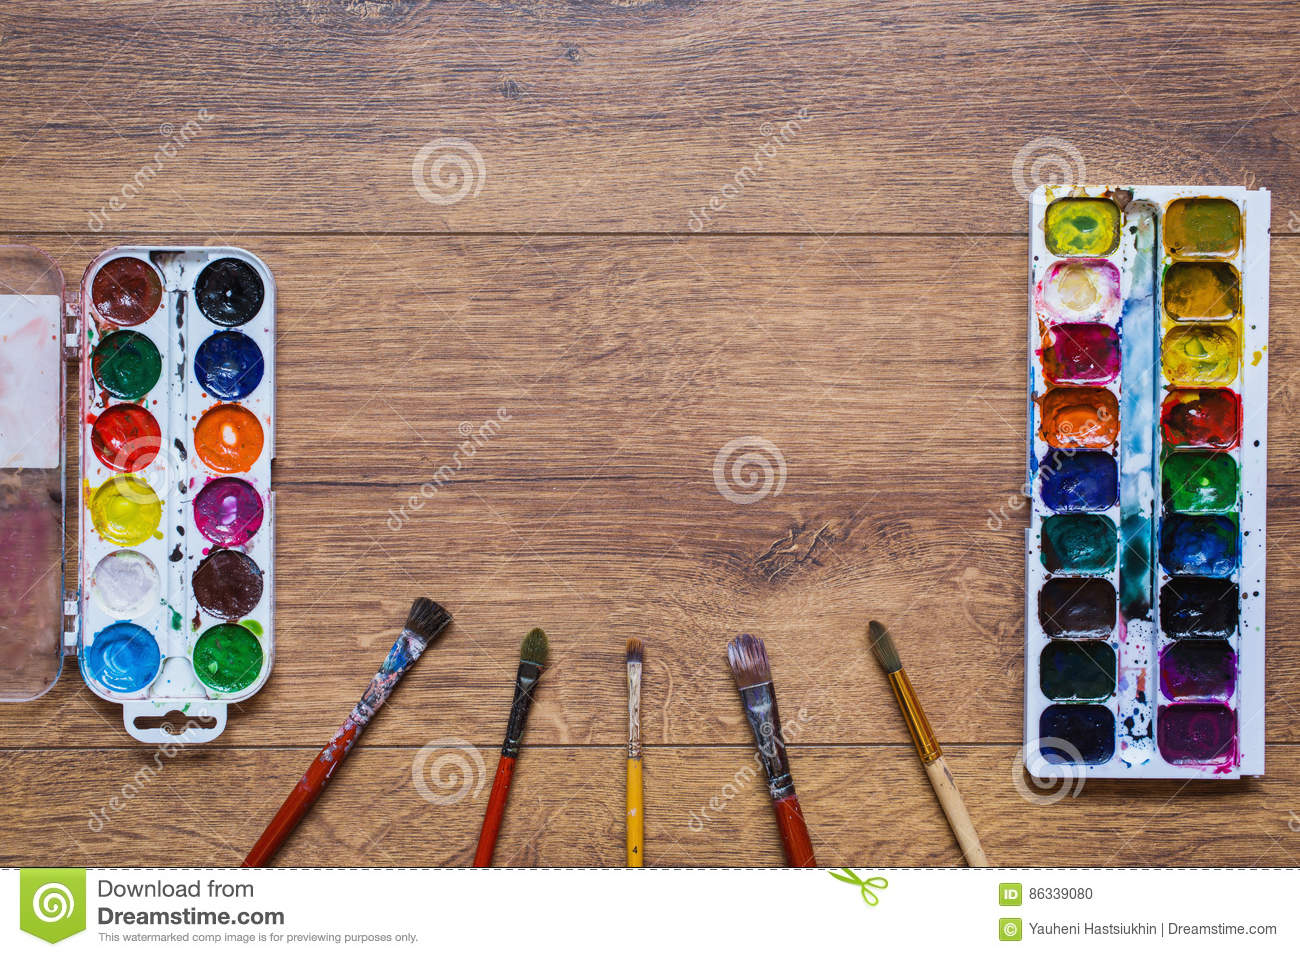 Artistic squirrel brush and water paints. Drawing tools for pupils, students, artists.